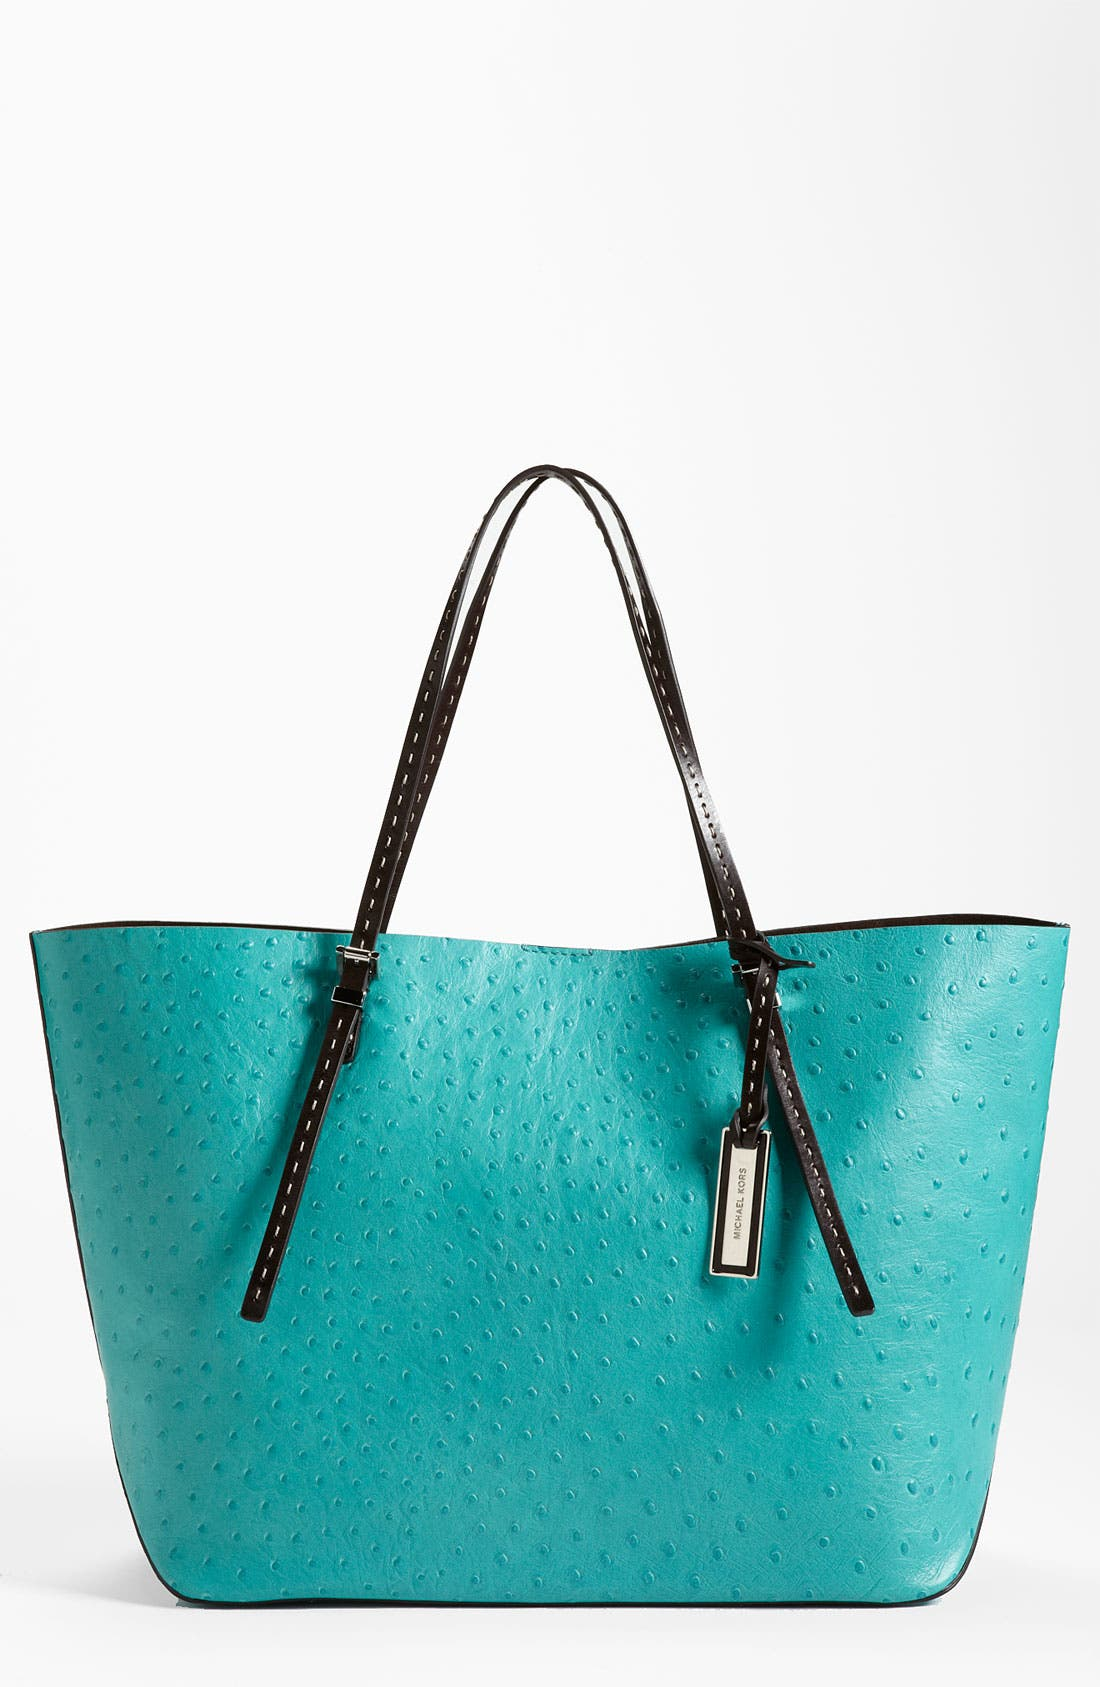 Alternate Image 1 Selected - Michael Kors Ostrich Embossed Leather Tote